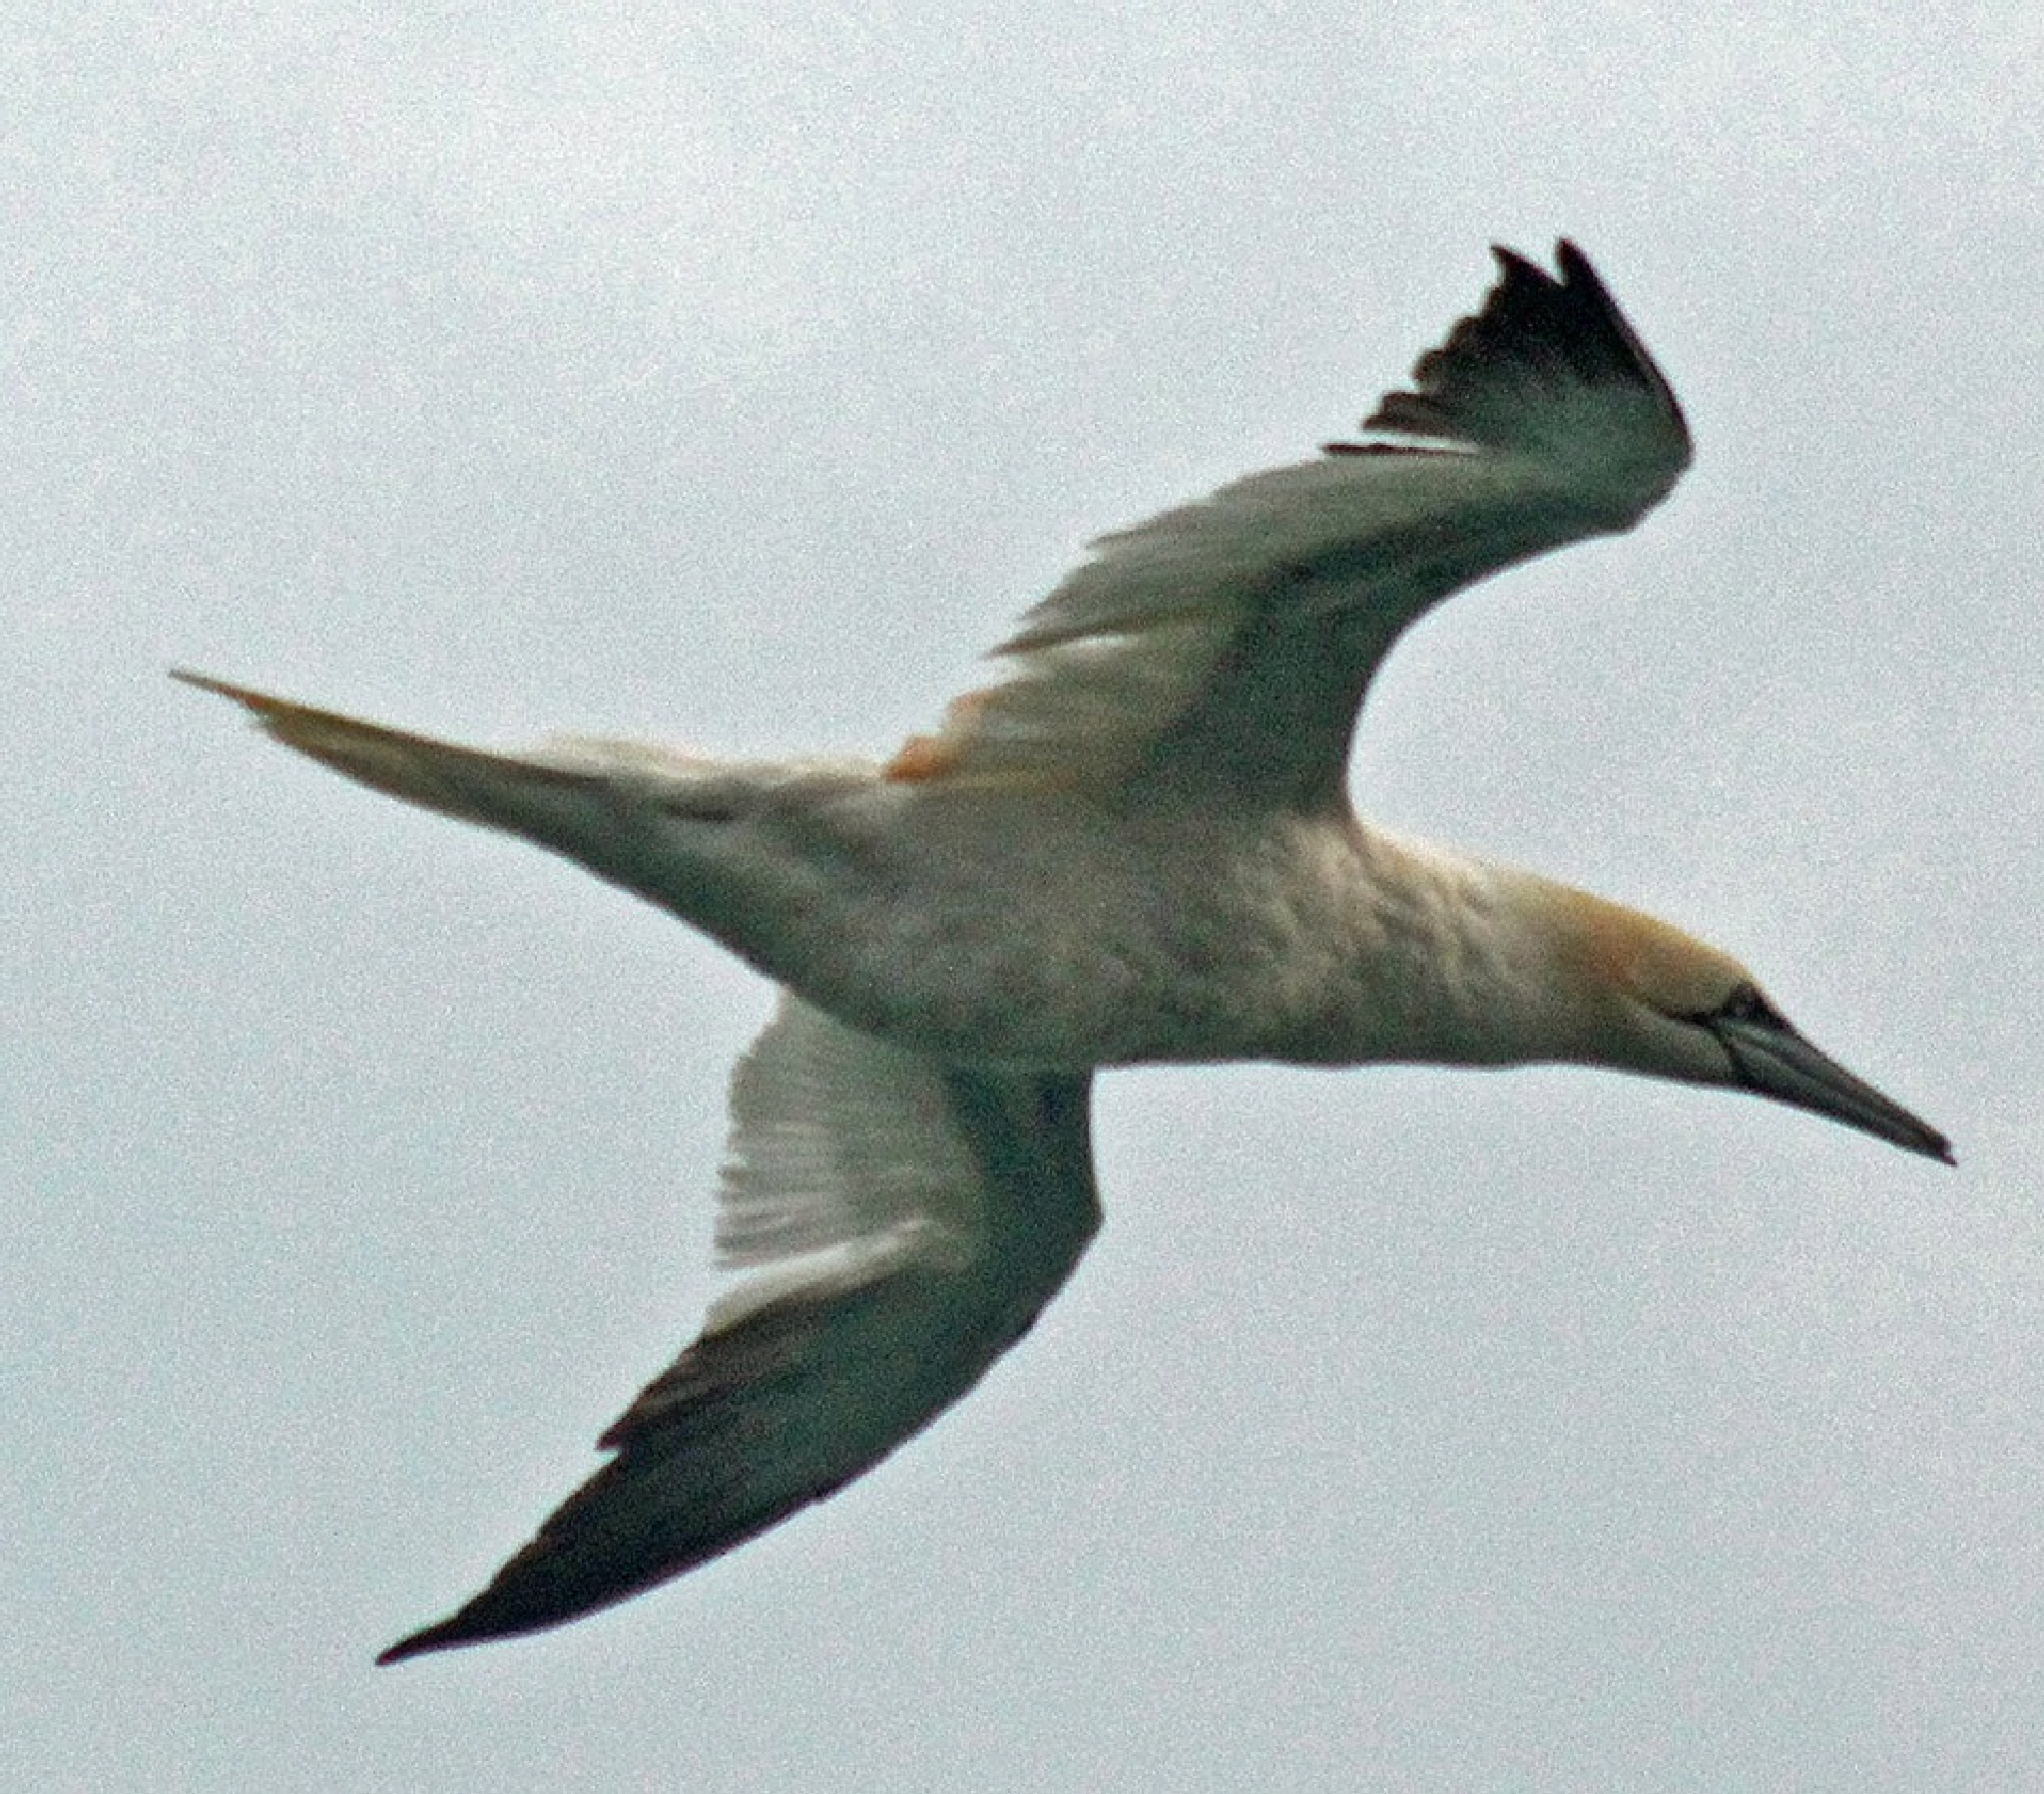 GANNET by mikewoodland21